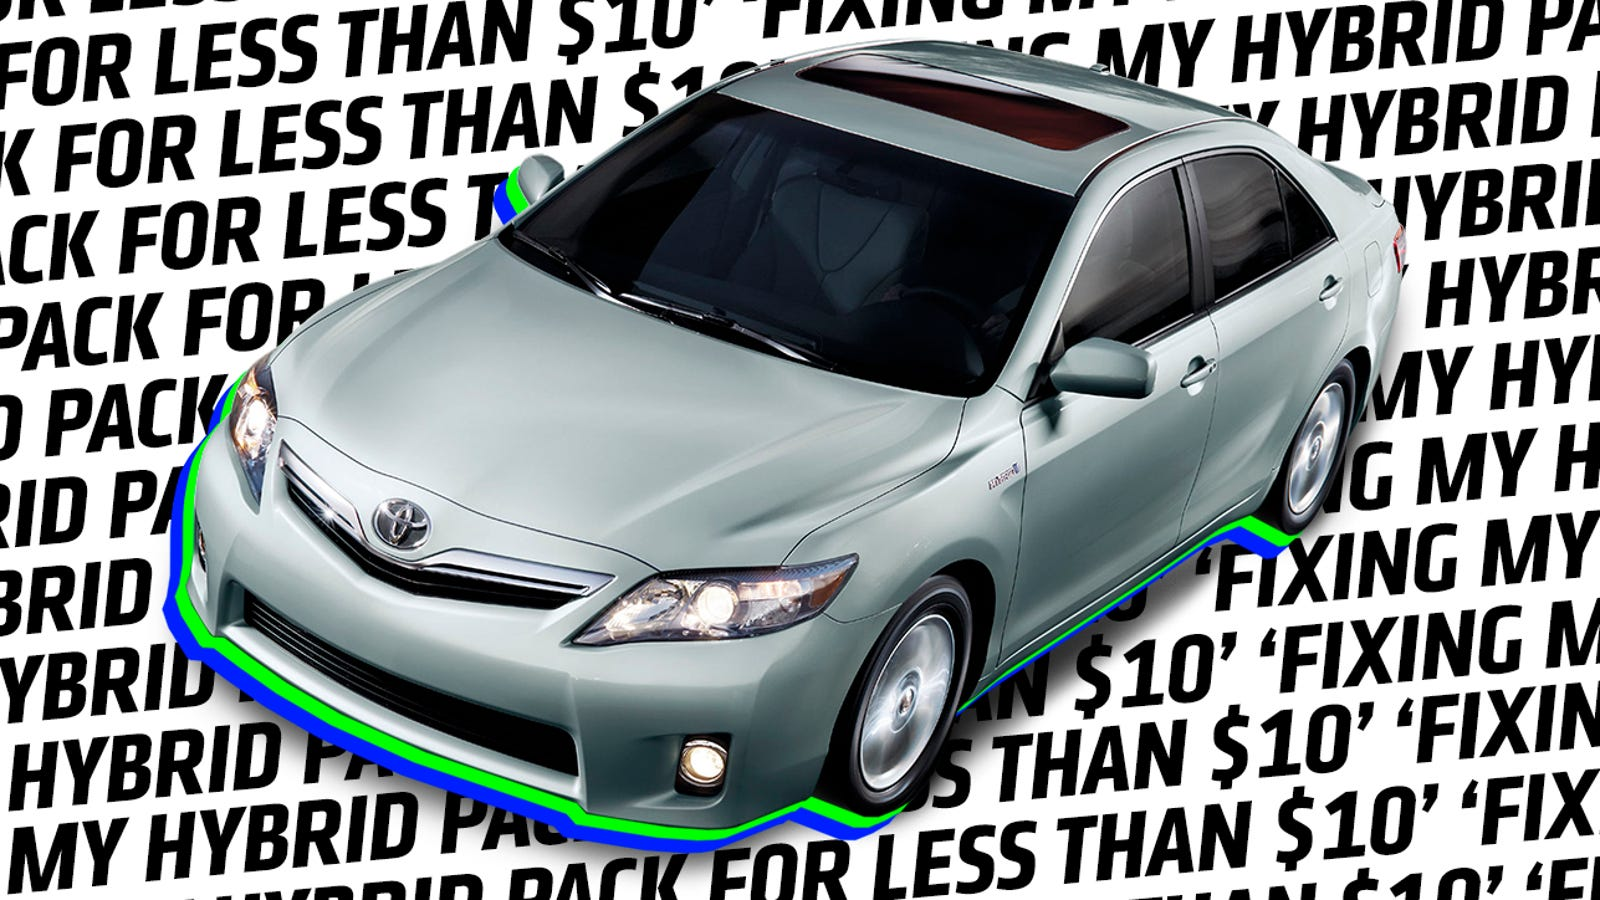 Toyota Camry: Do-it-yourself service precautions